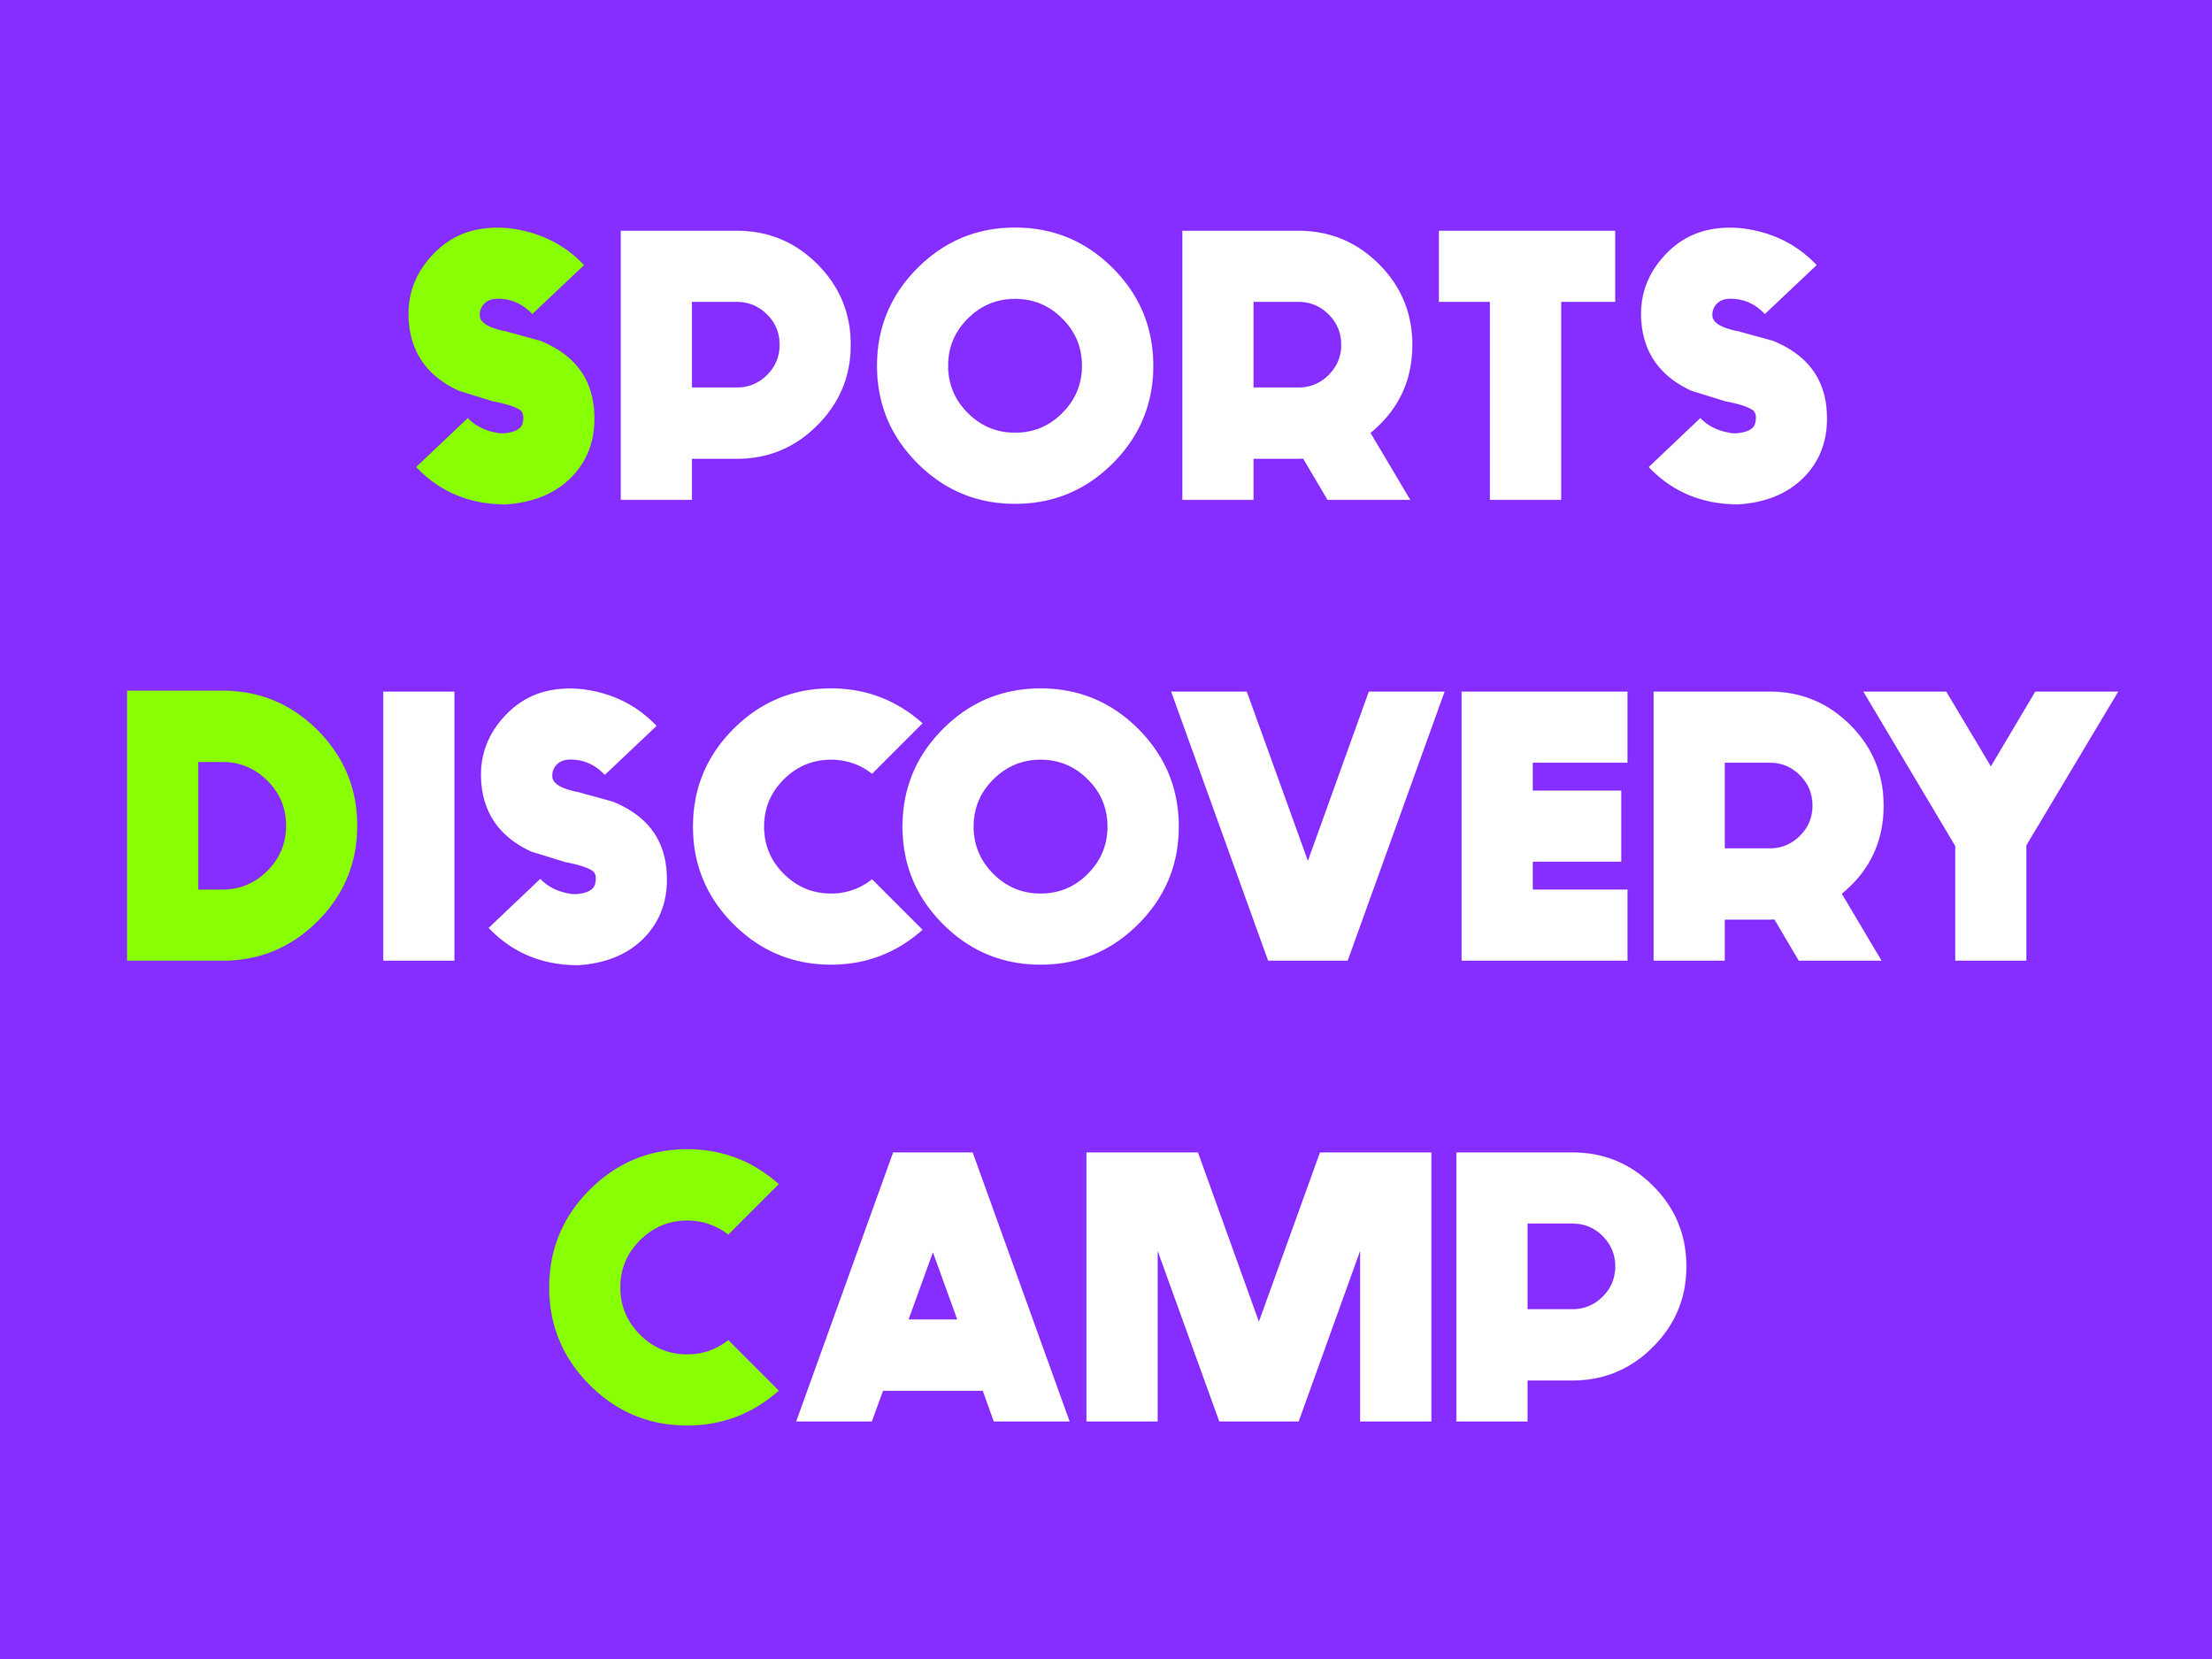 Sports Discovery Camp LOGO.jpg